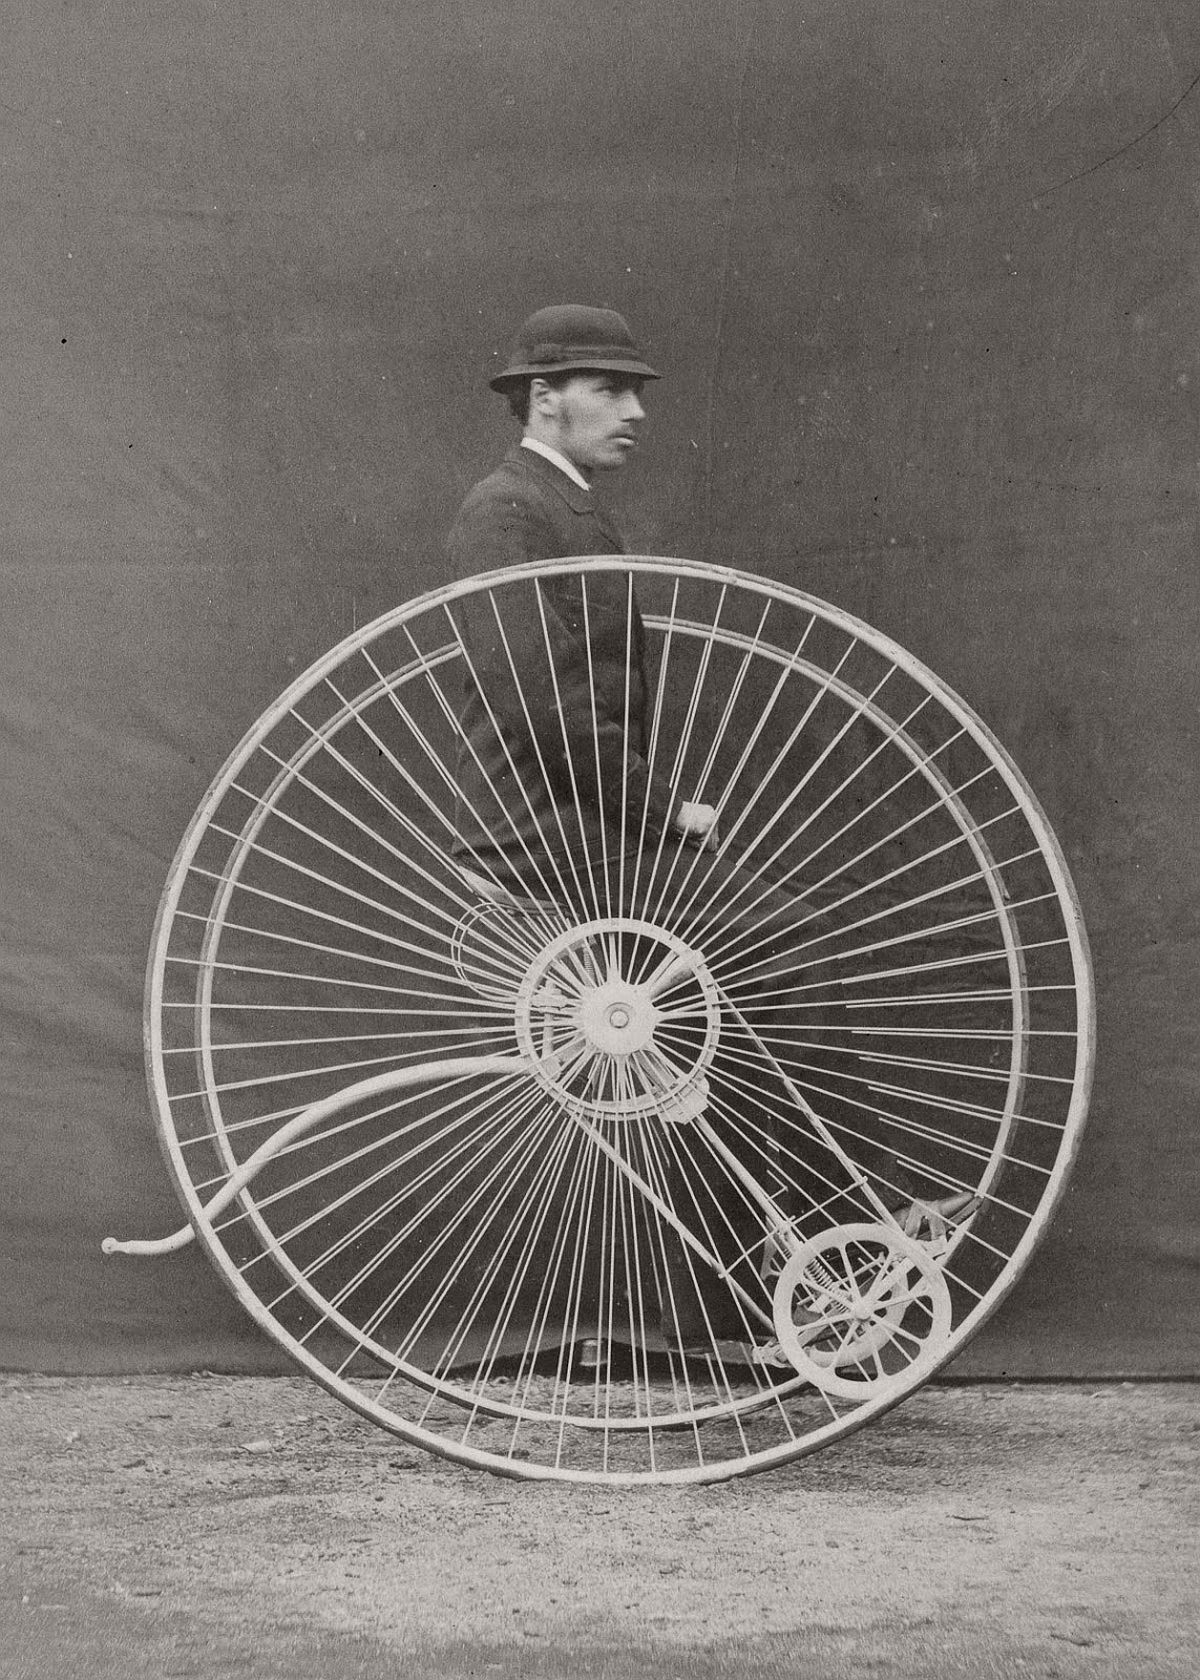 American Made Tires >> Vintage: Early Bicycles in the 19th Century (1850s – 1890s ...